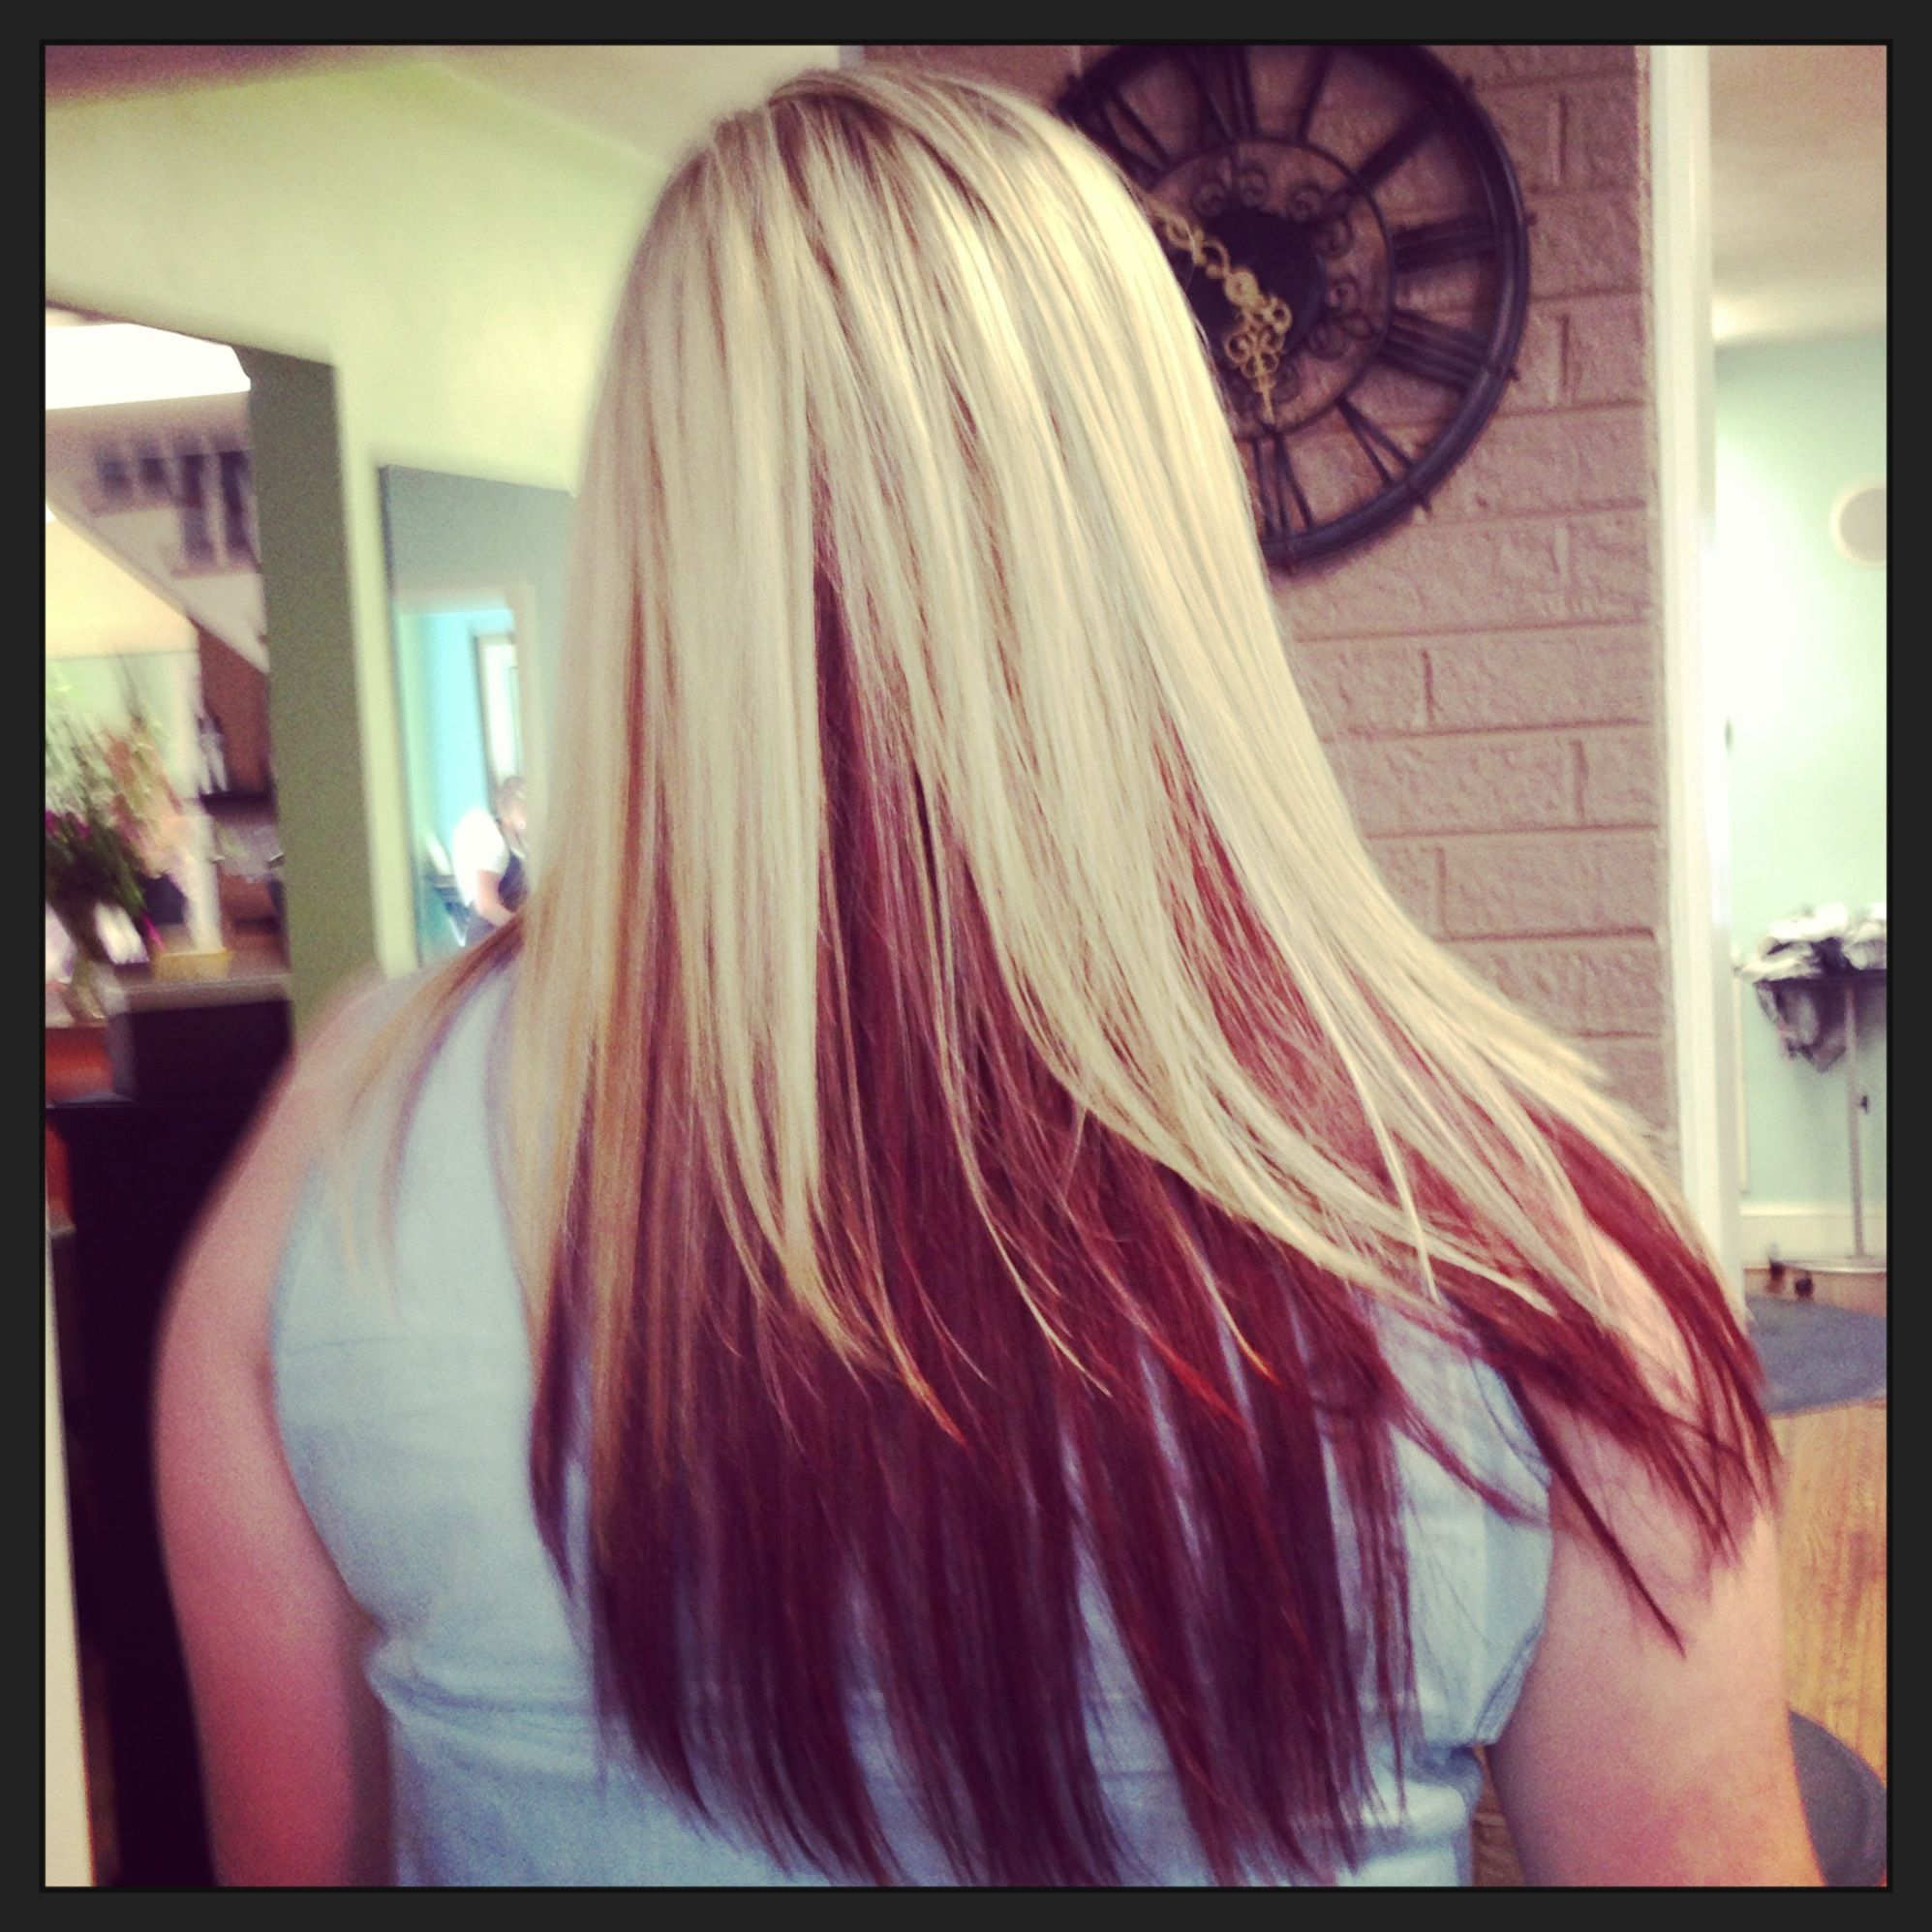 Blonde Heavy Hilites On Top And Bright Auburn Underneath Cool